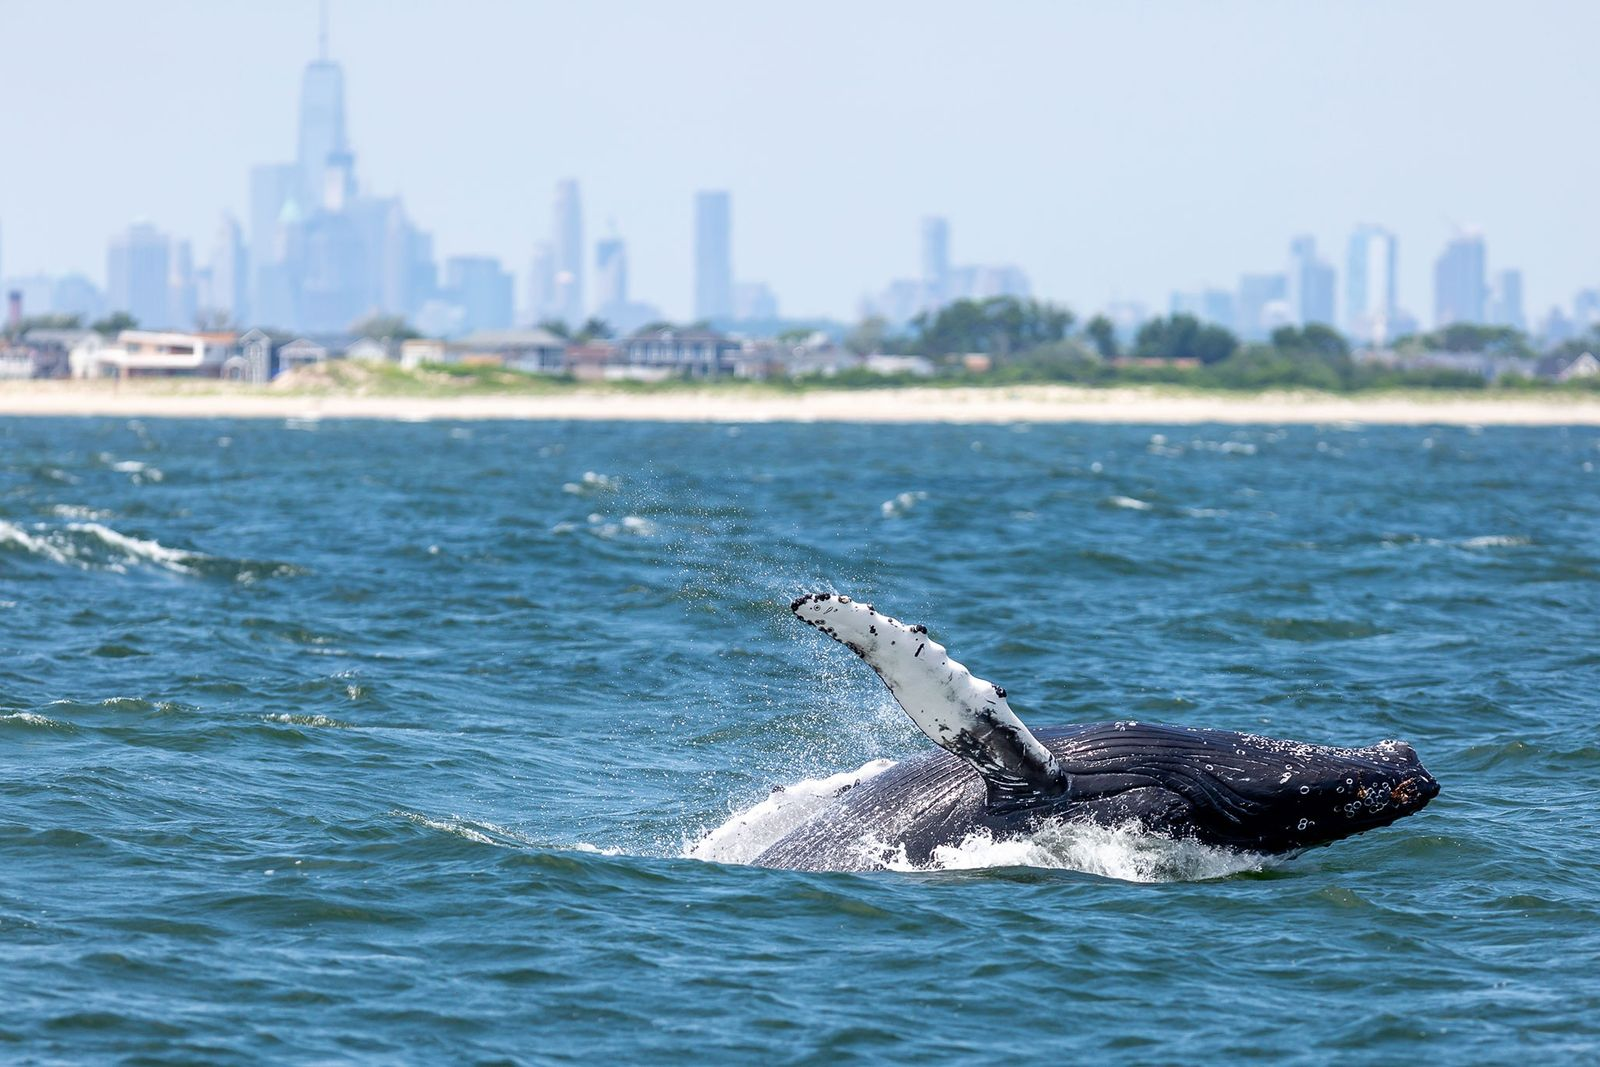 Whale populations in New York Harbour are booming—here's why